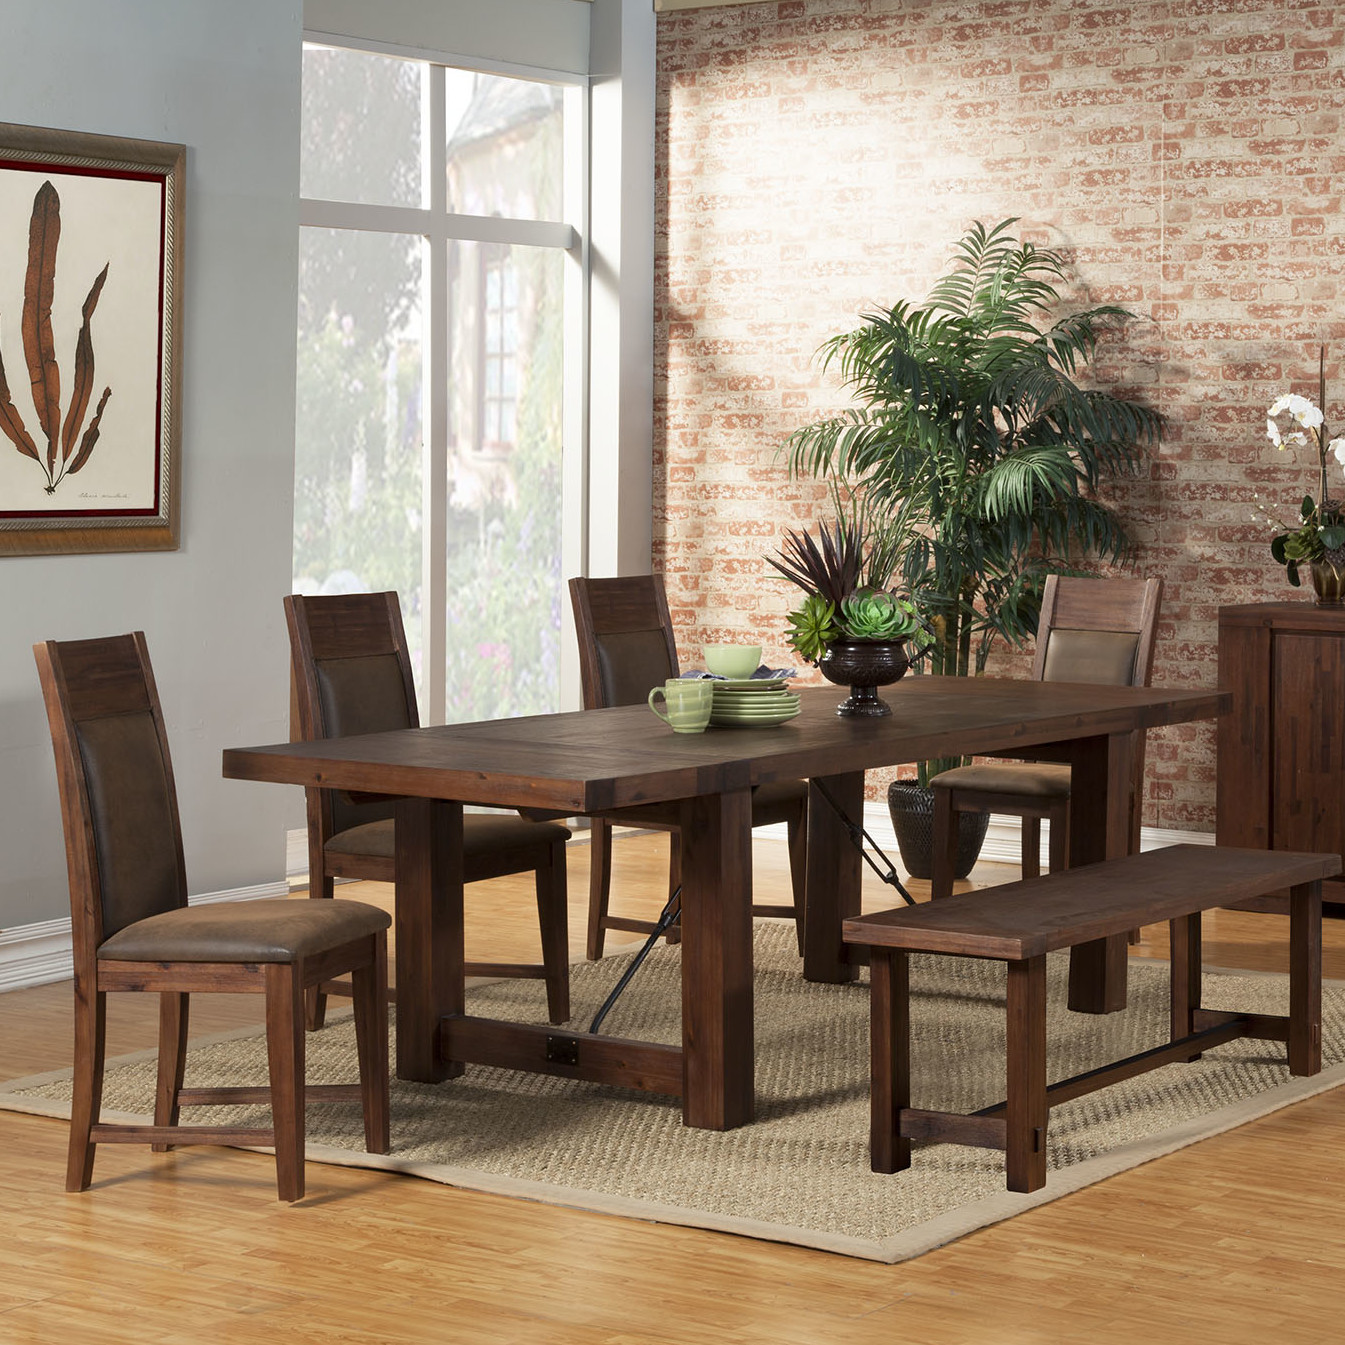 Antique Cappuccino Table with 4 Chairs & Benc